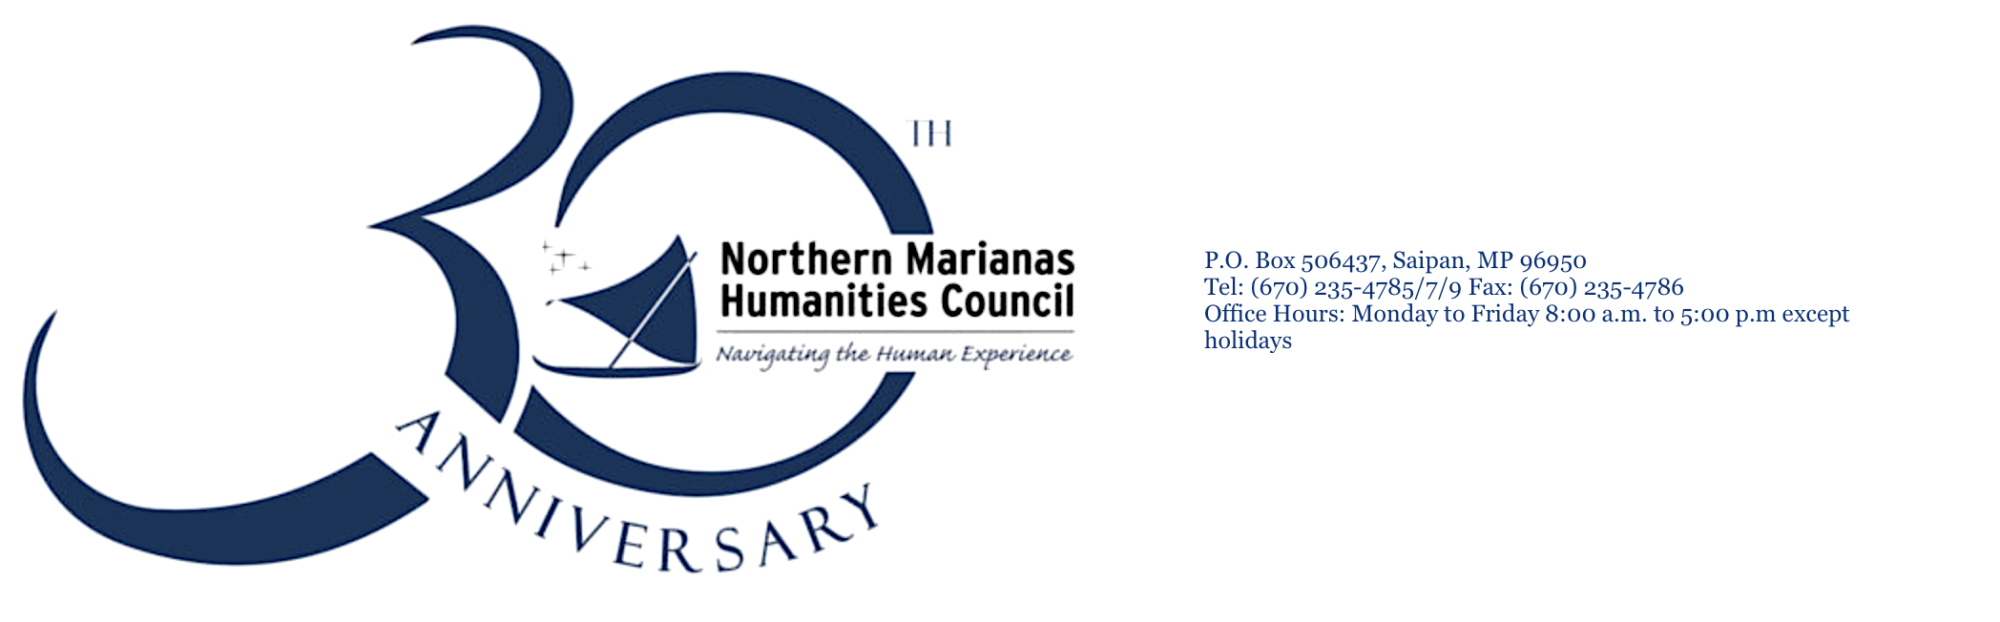 Northern Marianas Humanities Council